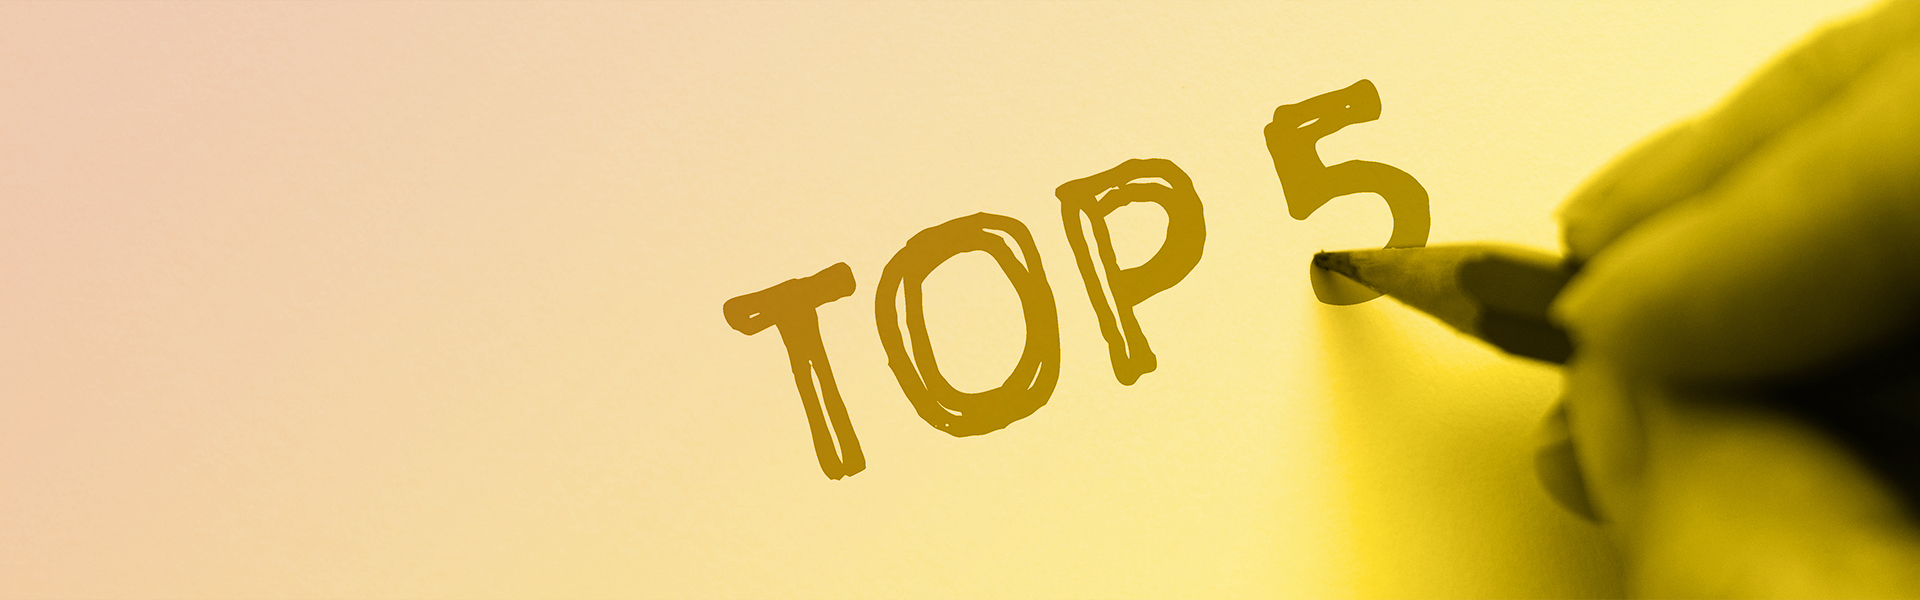 Stock photograph of fingers holding a pencil with the words top five written on a piece of paper